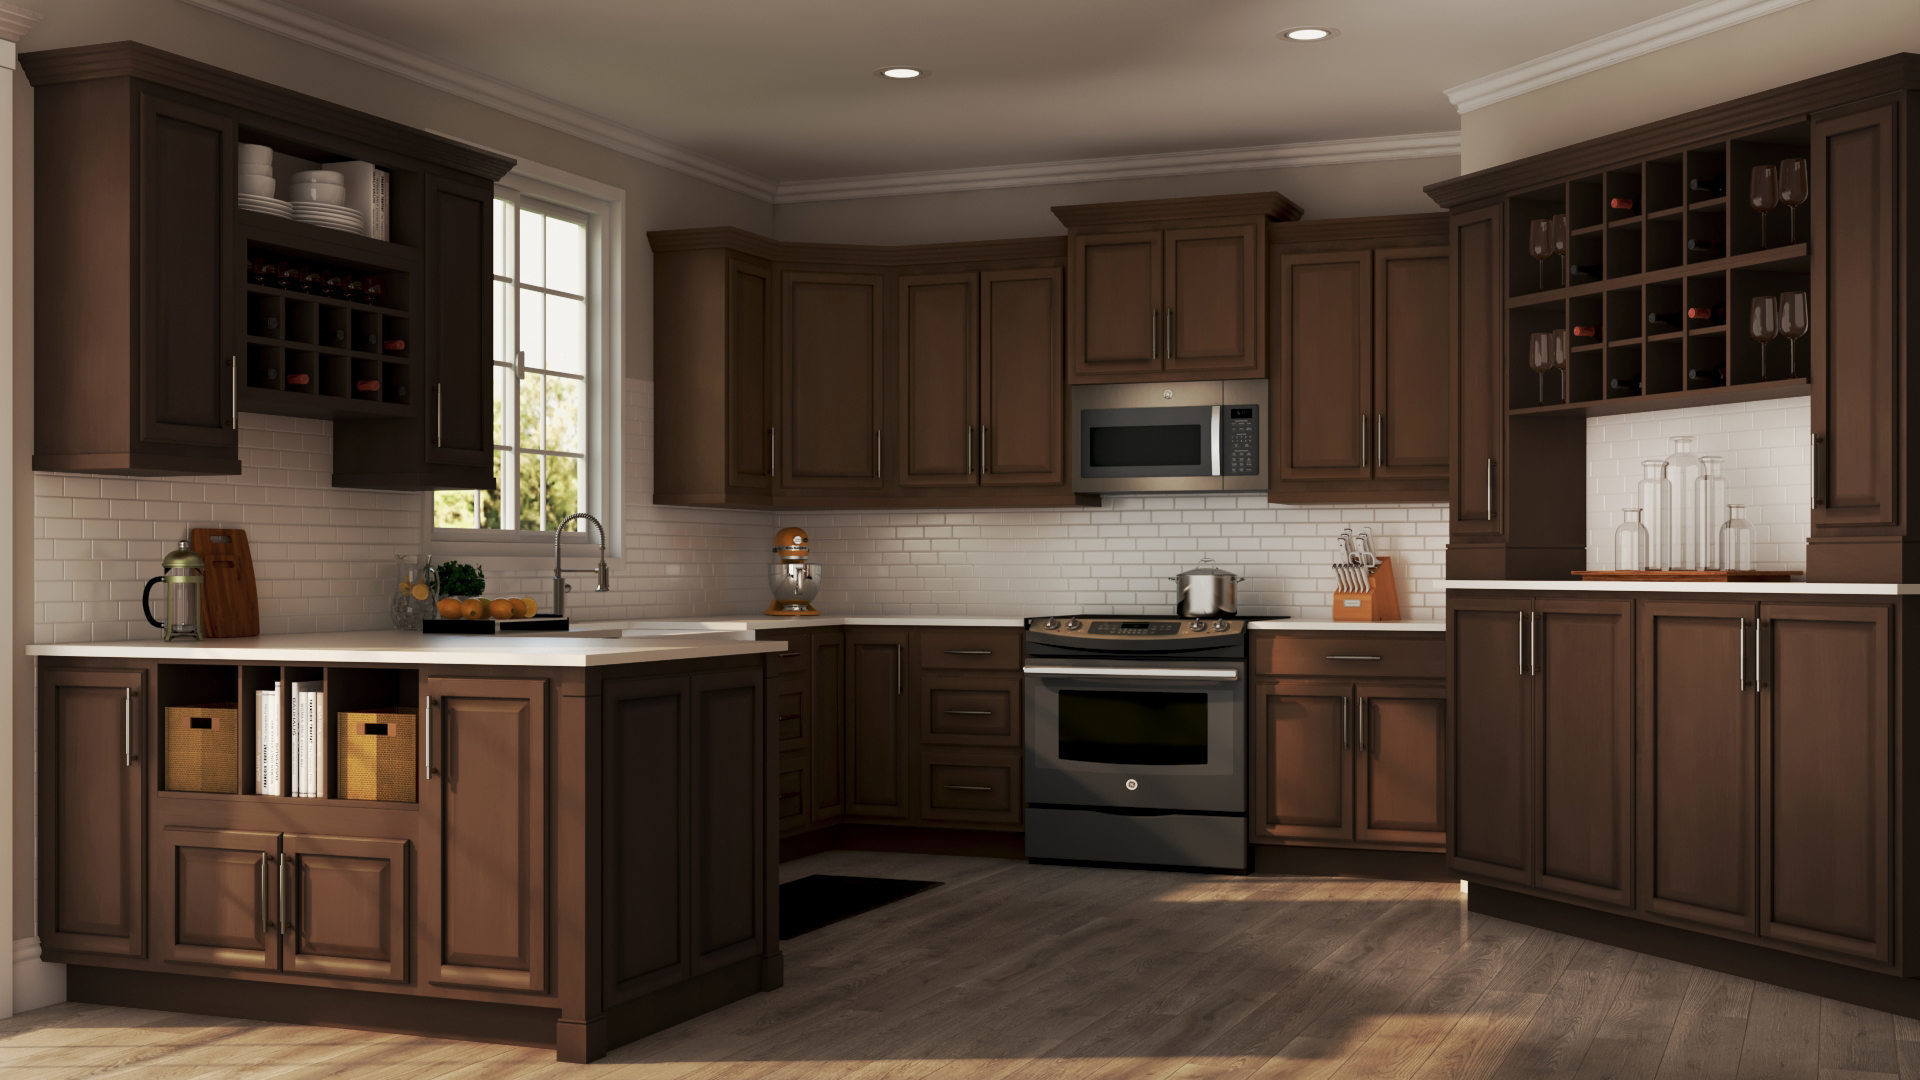 The Home Depot Kitchen Cabinets Hampton Wall Kitchen Cabinets In Cognac Kitchen The Home Depot